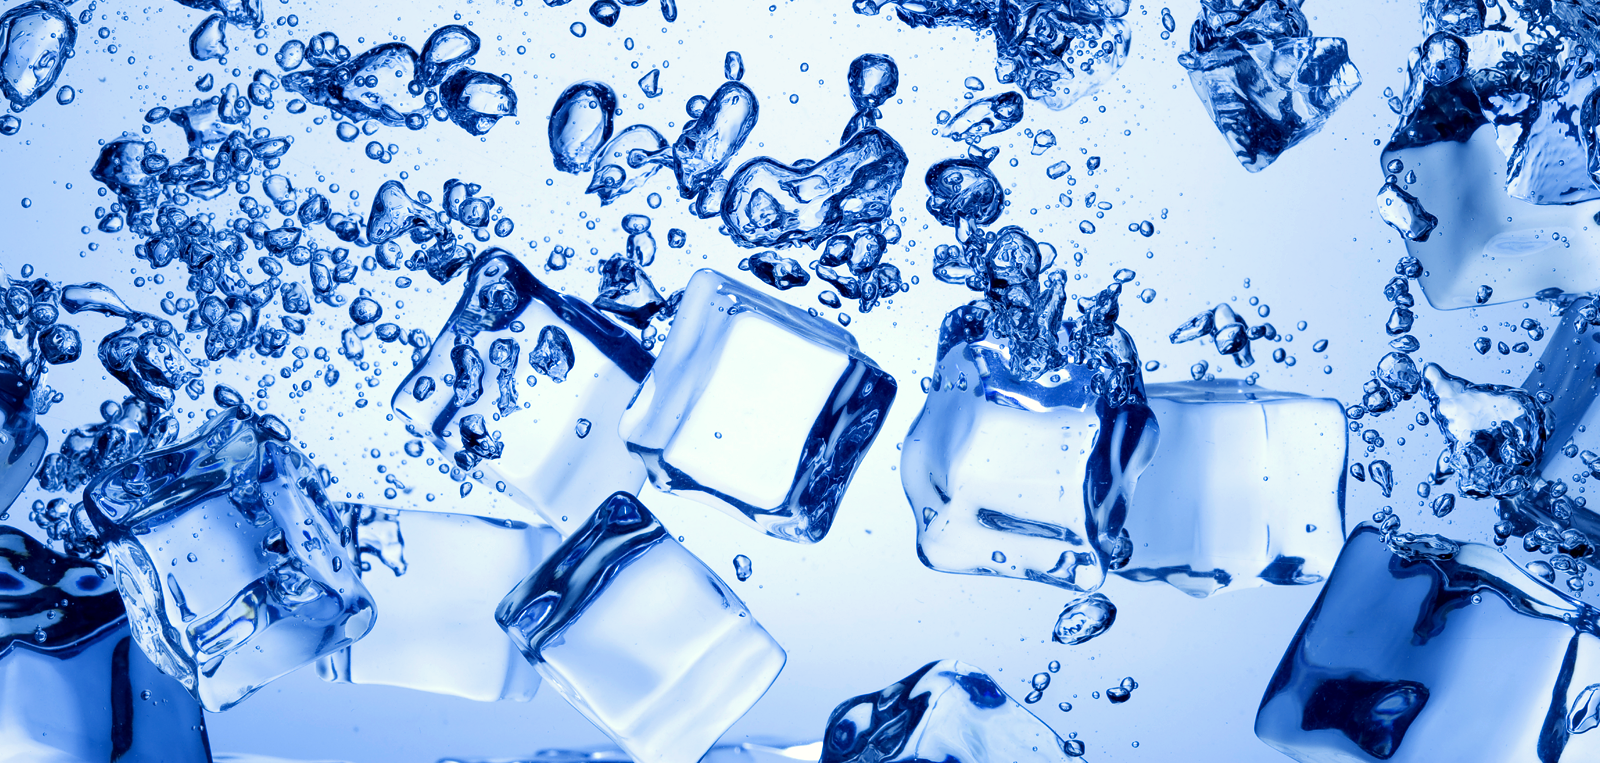 The Challenges of Fundraising and Philanthropy, in Light of the Ice Bucket Challenge